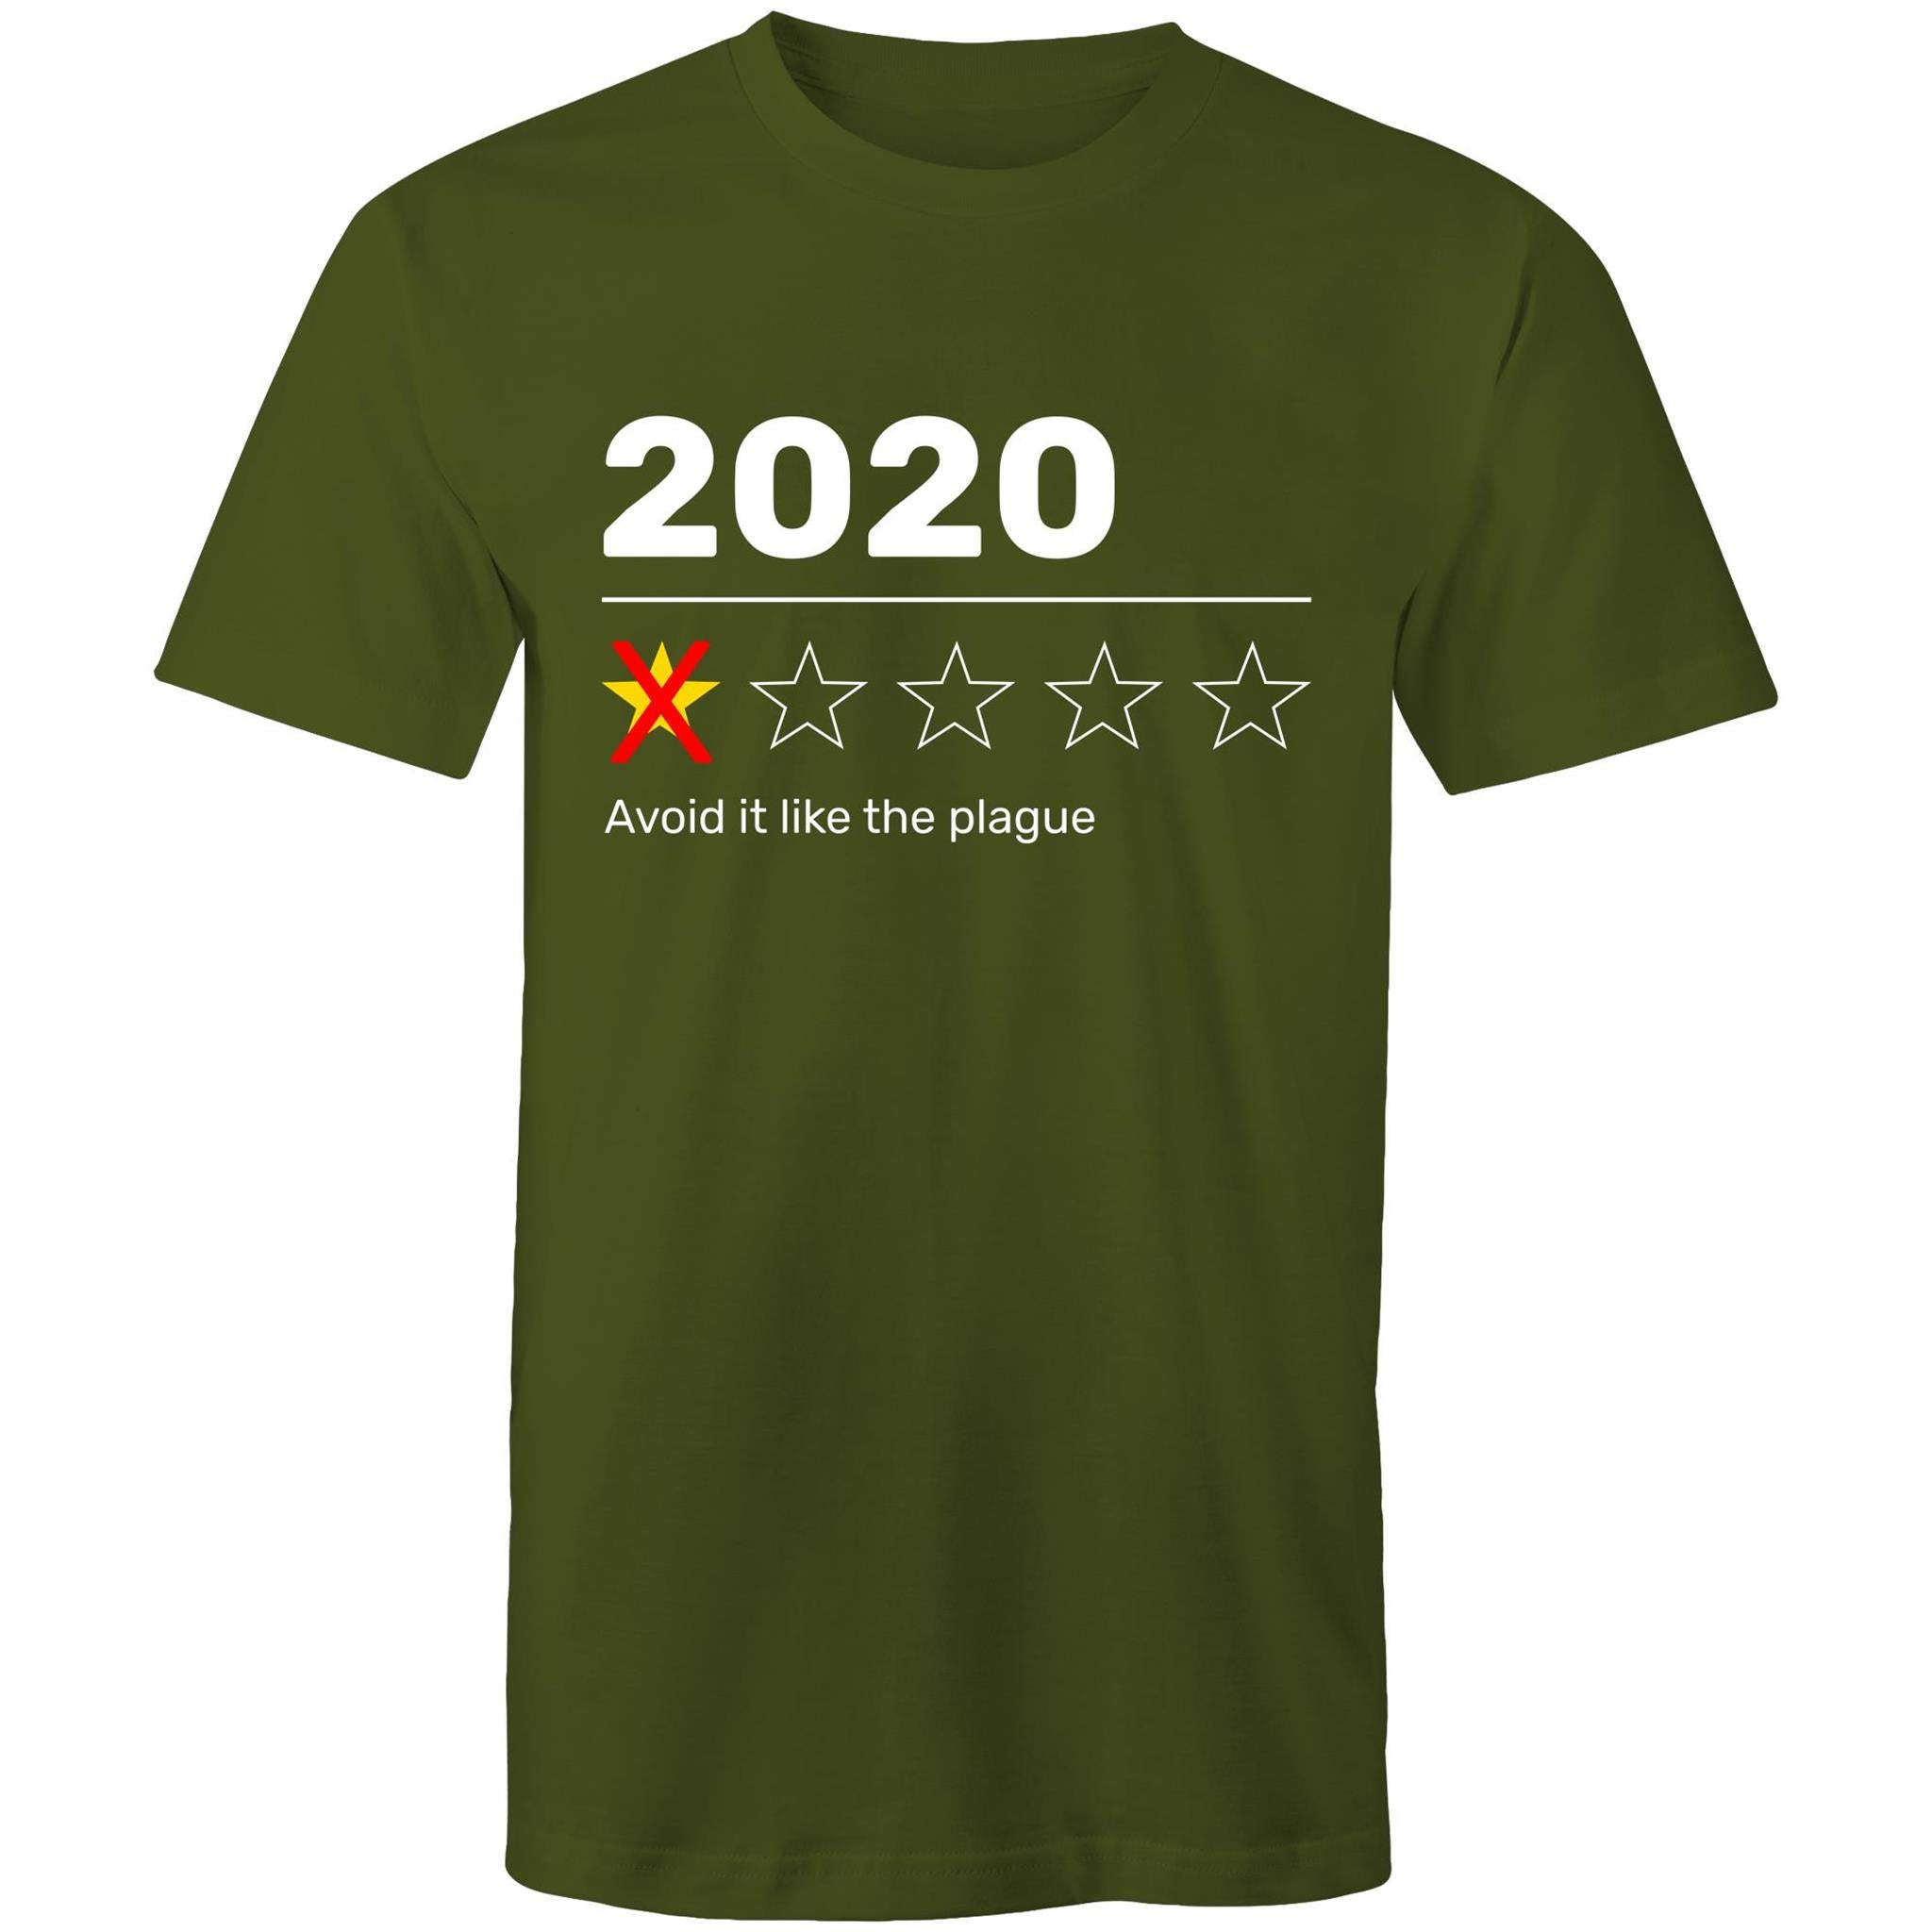 2020 zero stars, avoid it like the plague (Unisex XS - 2XL)